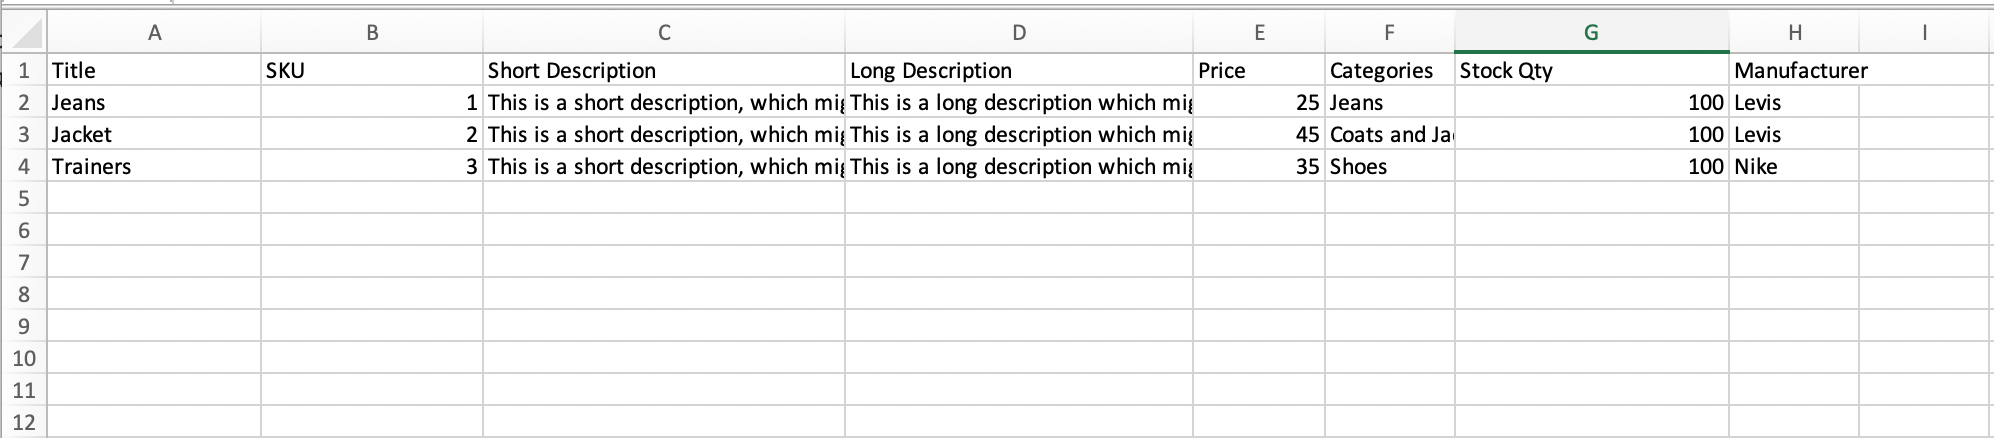 Product data in a spreadsheet